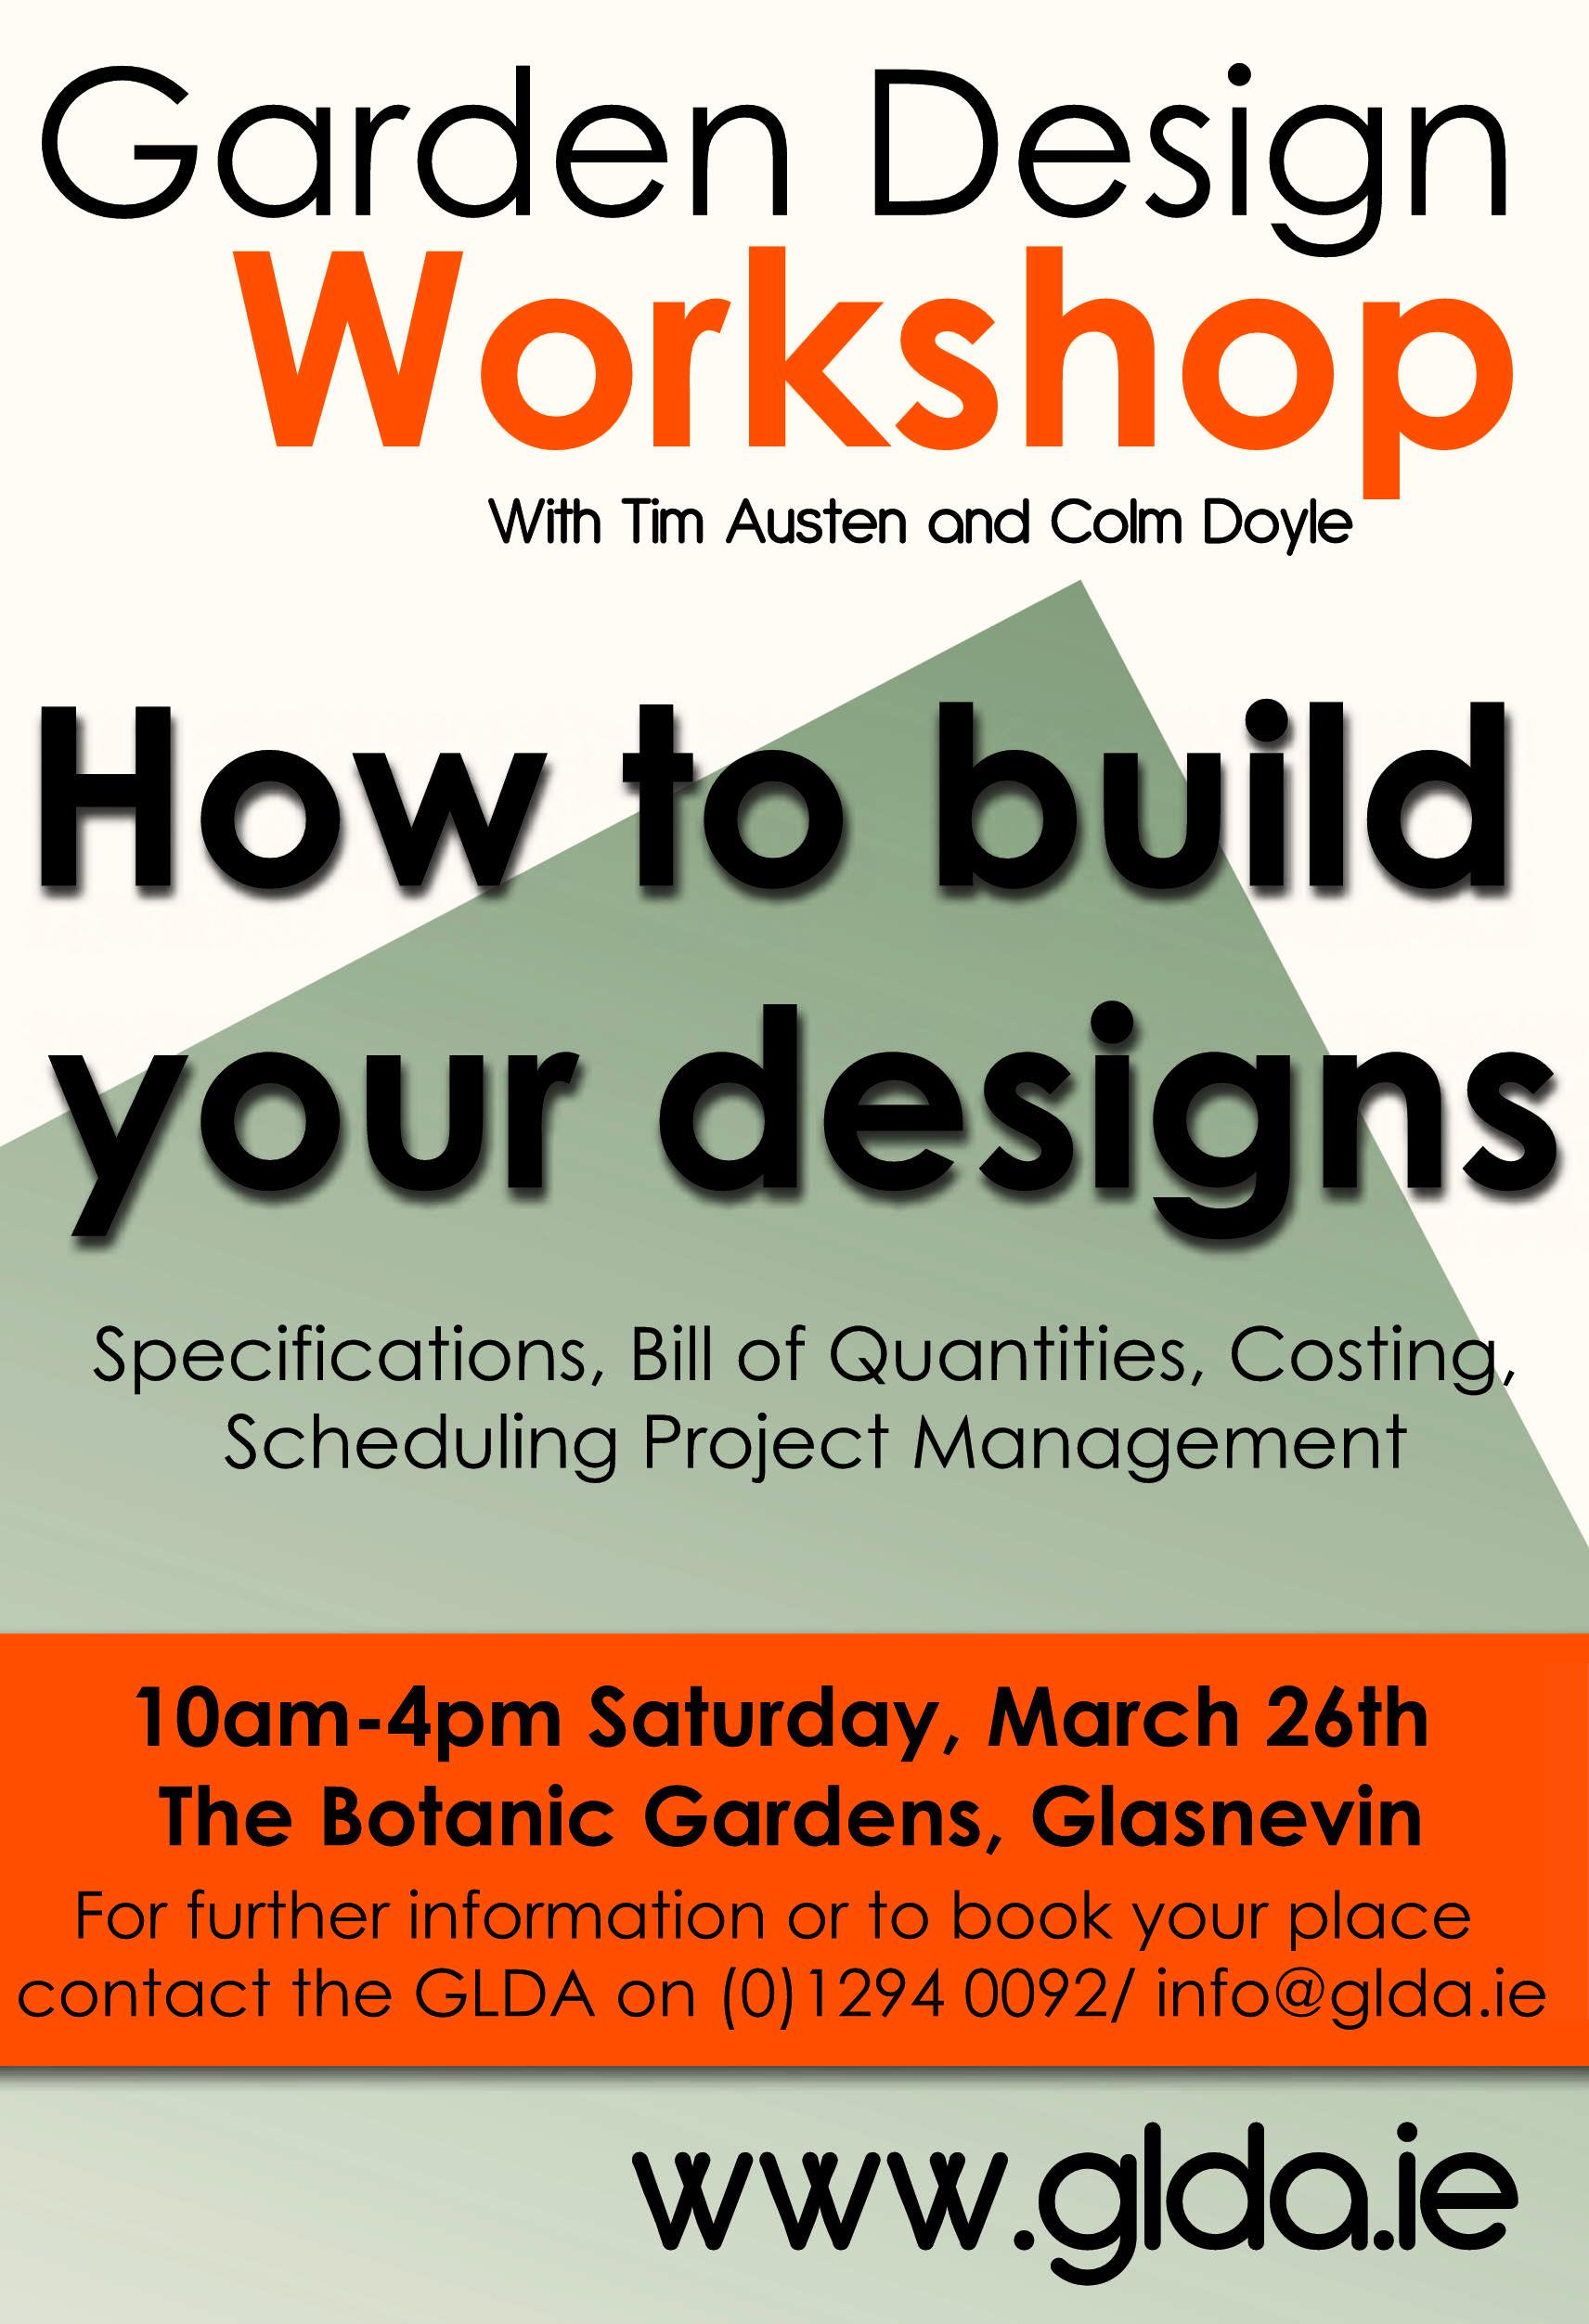 Workshop on how to build your garden designs